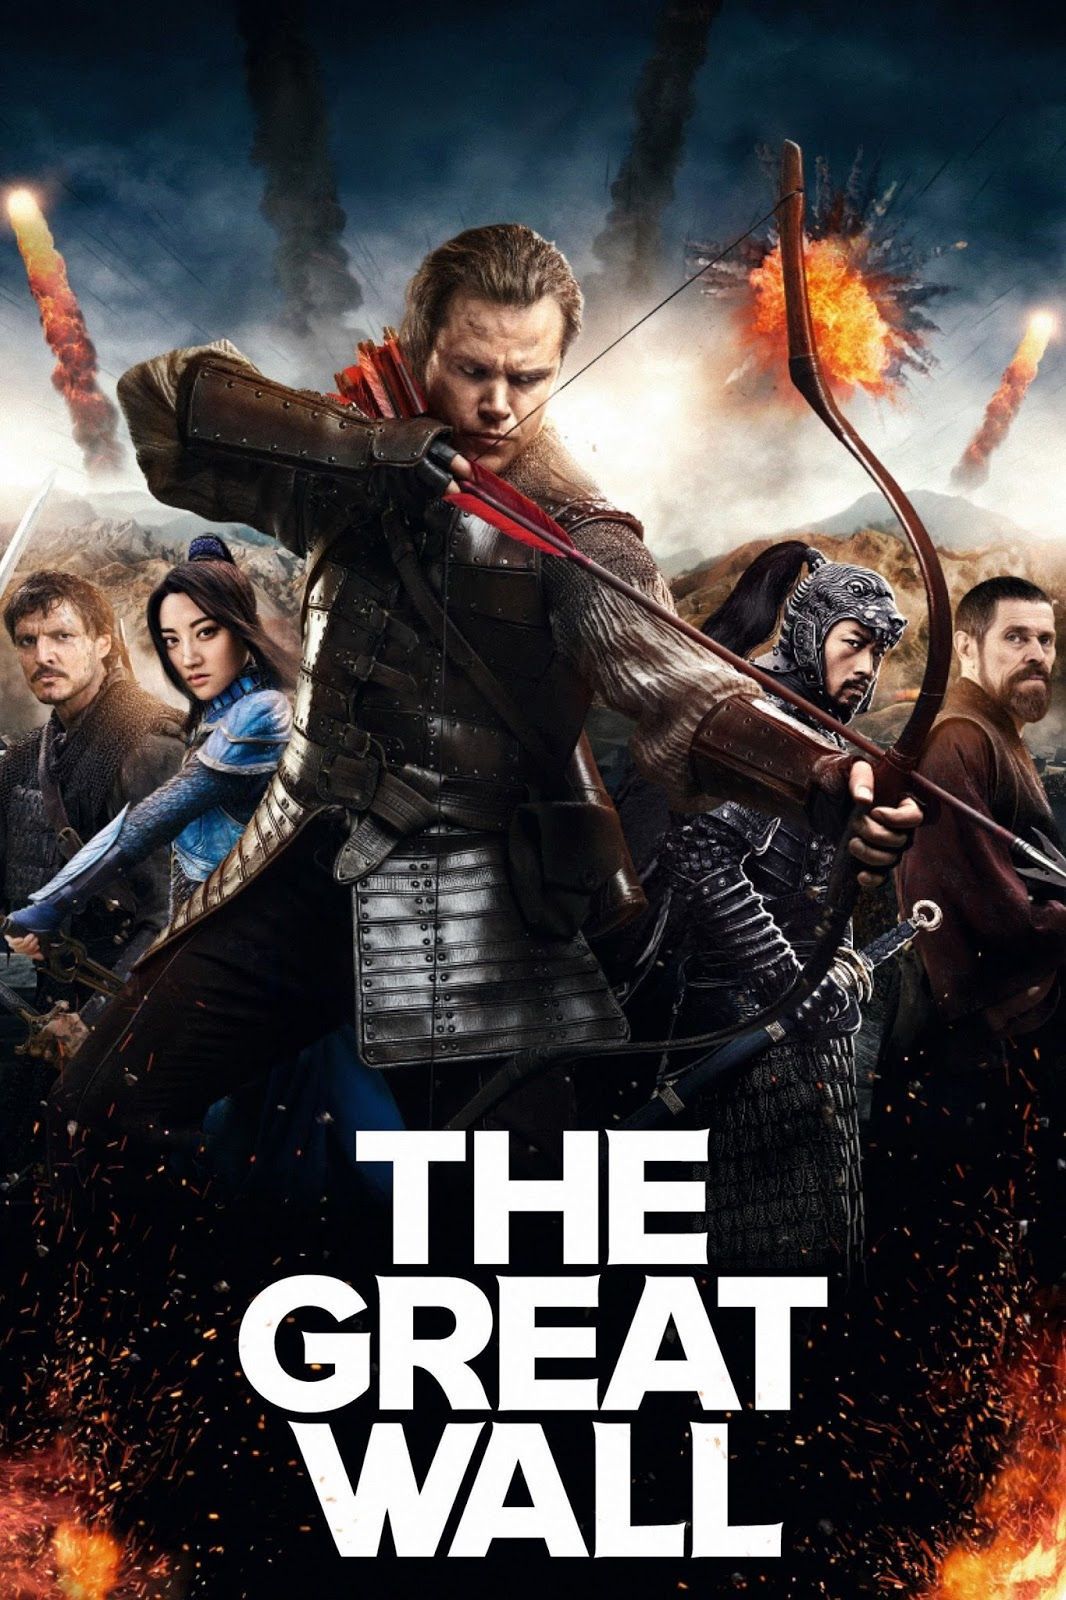 the great wall full movie in hindi dubbed download hd